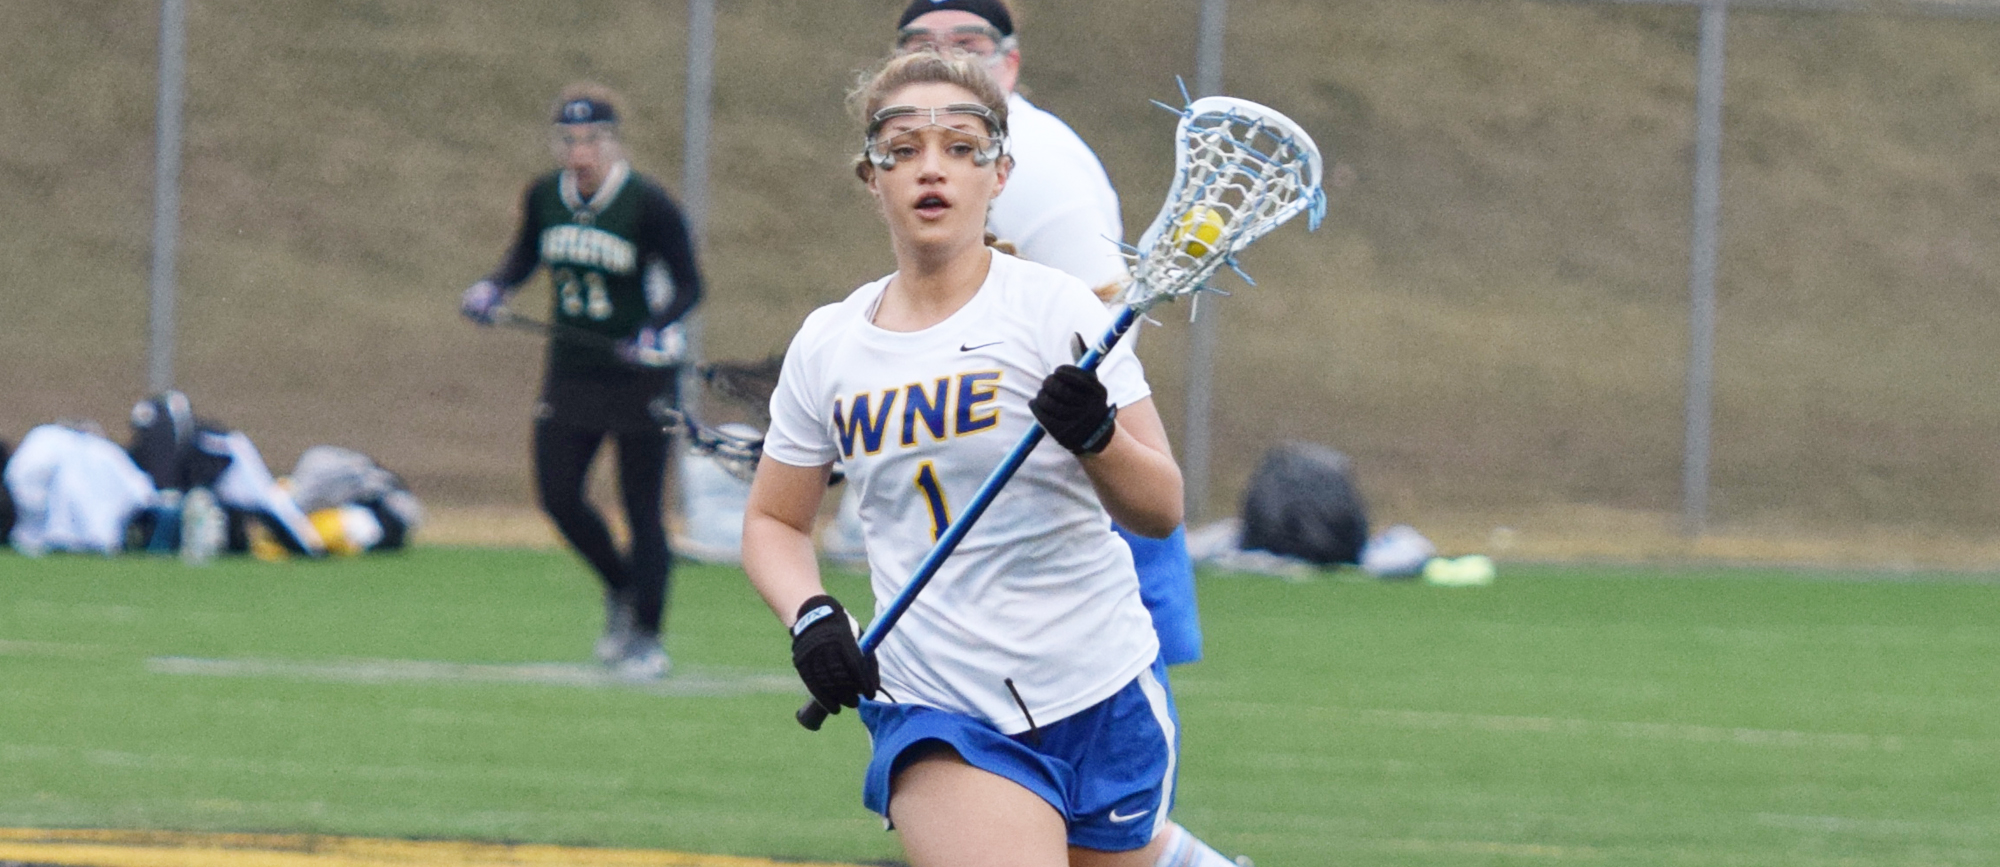 Western New England Drops CCC Opener at Gordon, 12-10